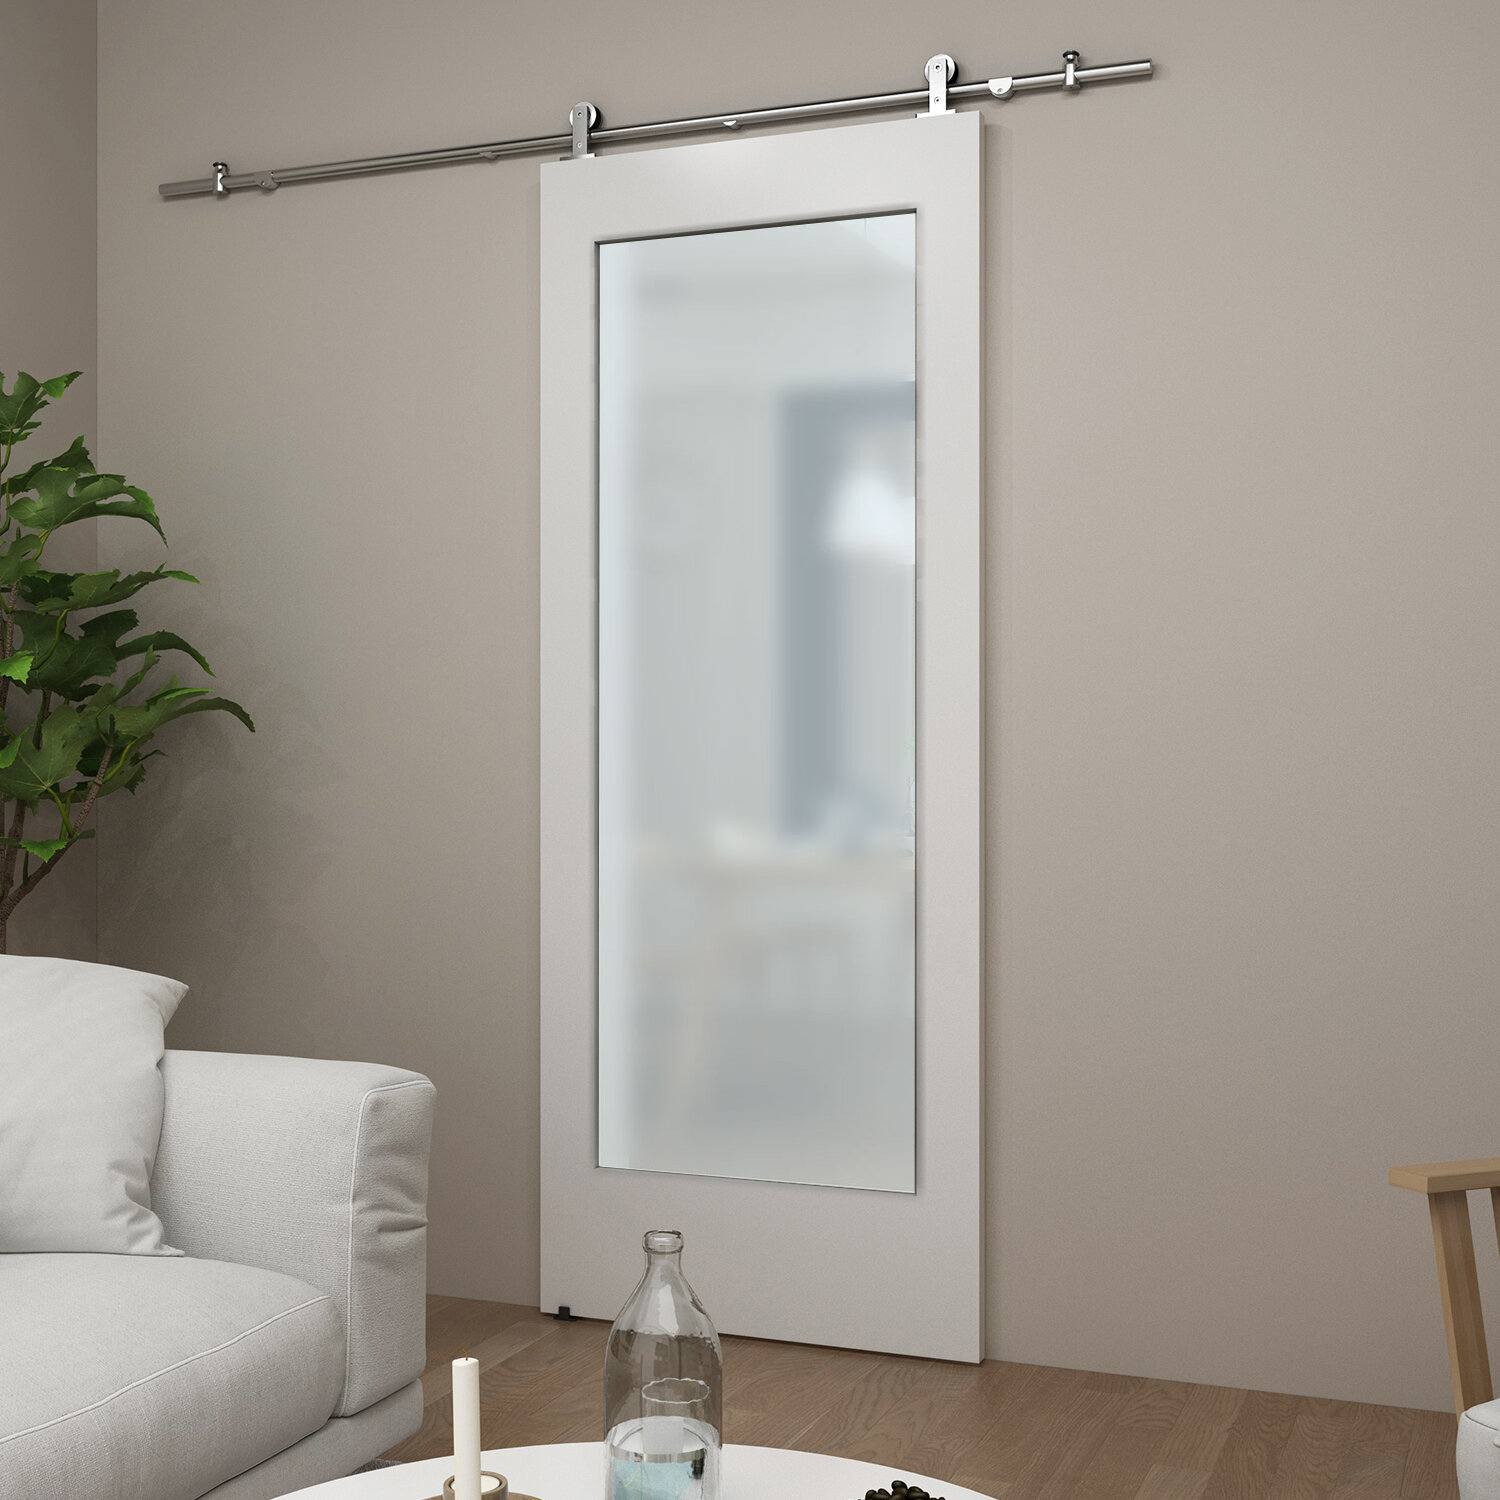 Colonial Elegance One Lite Glass Barn Door Without Installation Hardware Kit Reviews